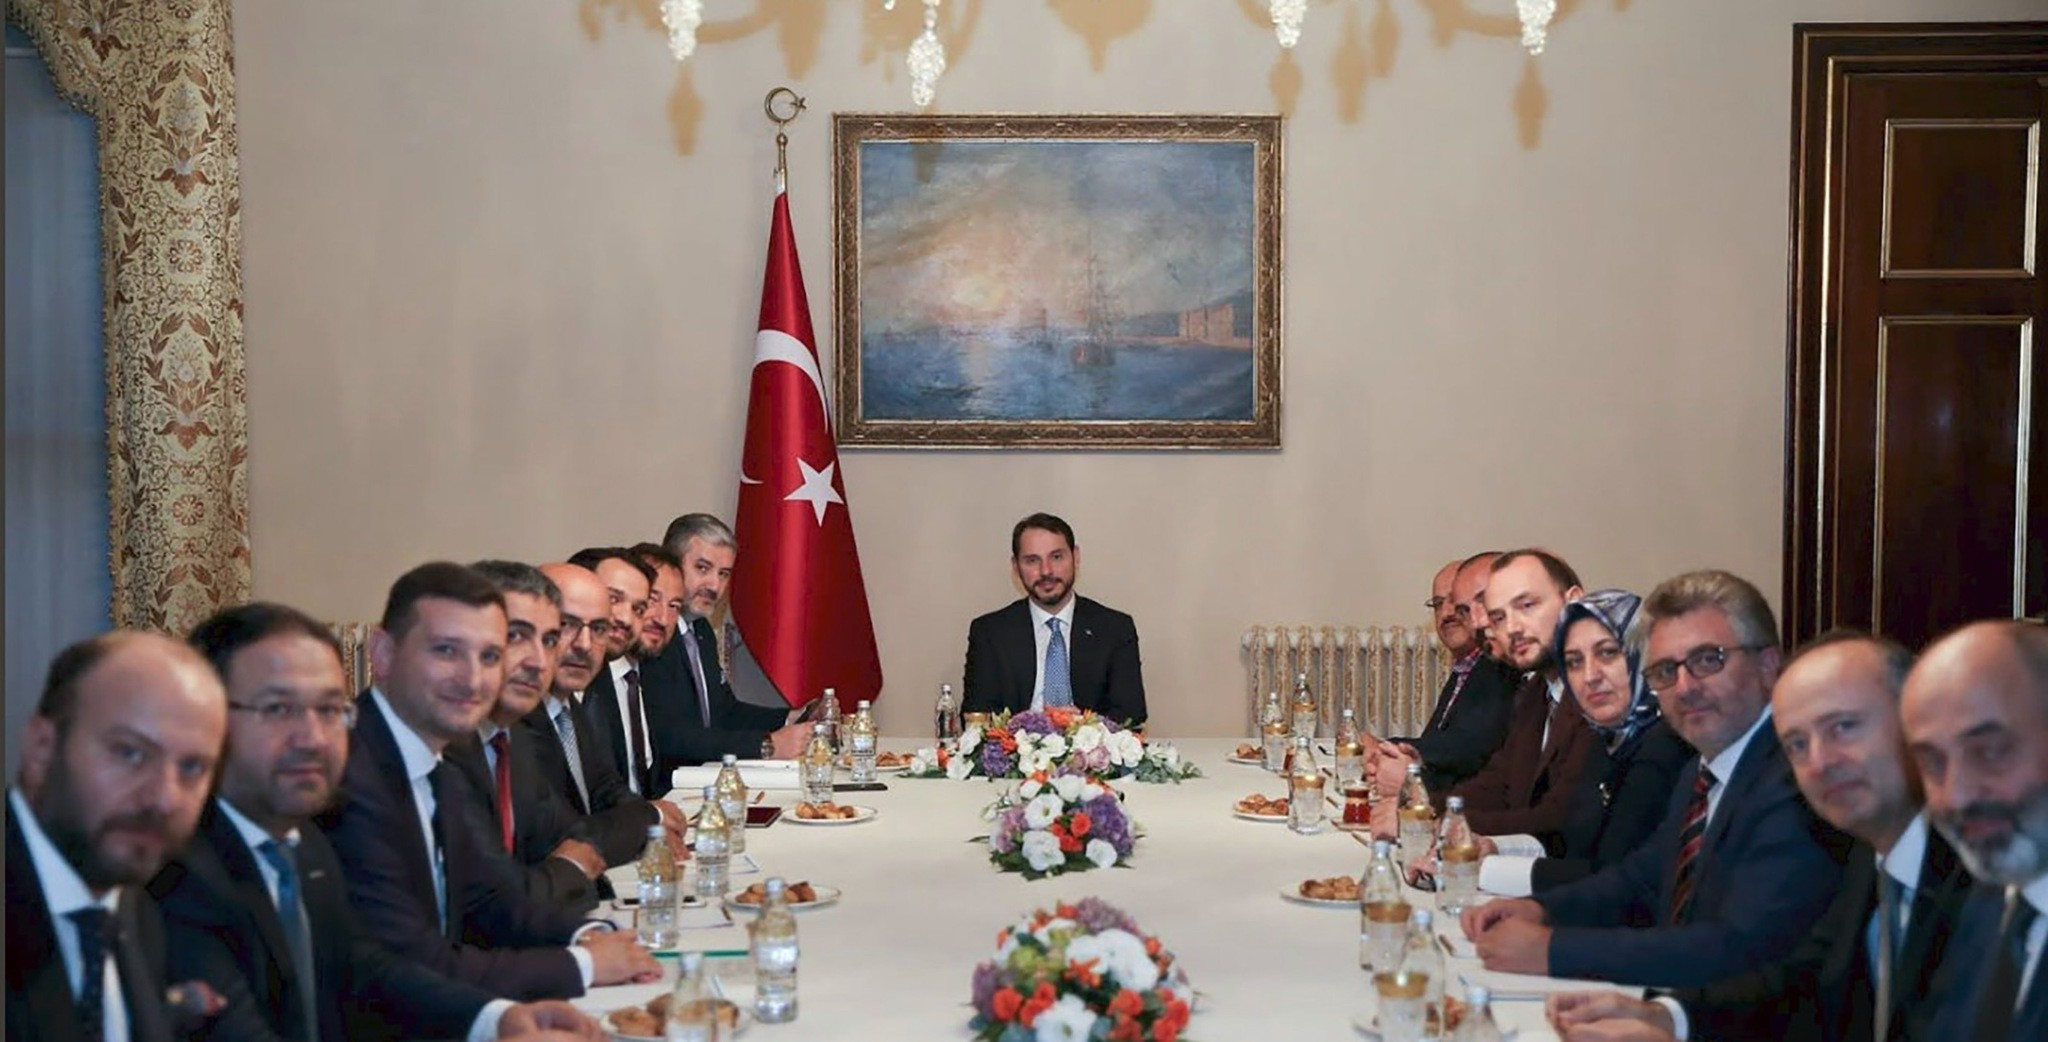 Before the announcement of the MTP, Treasury and Finance Minister Berat Albayrak met with the representatives of some leading Turkish business associations on Tuesday evening.